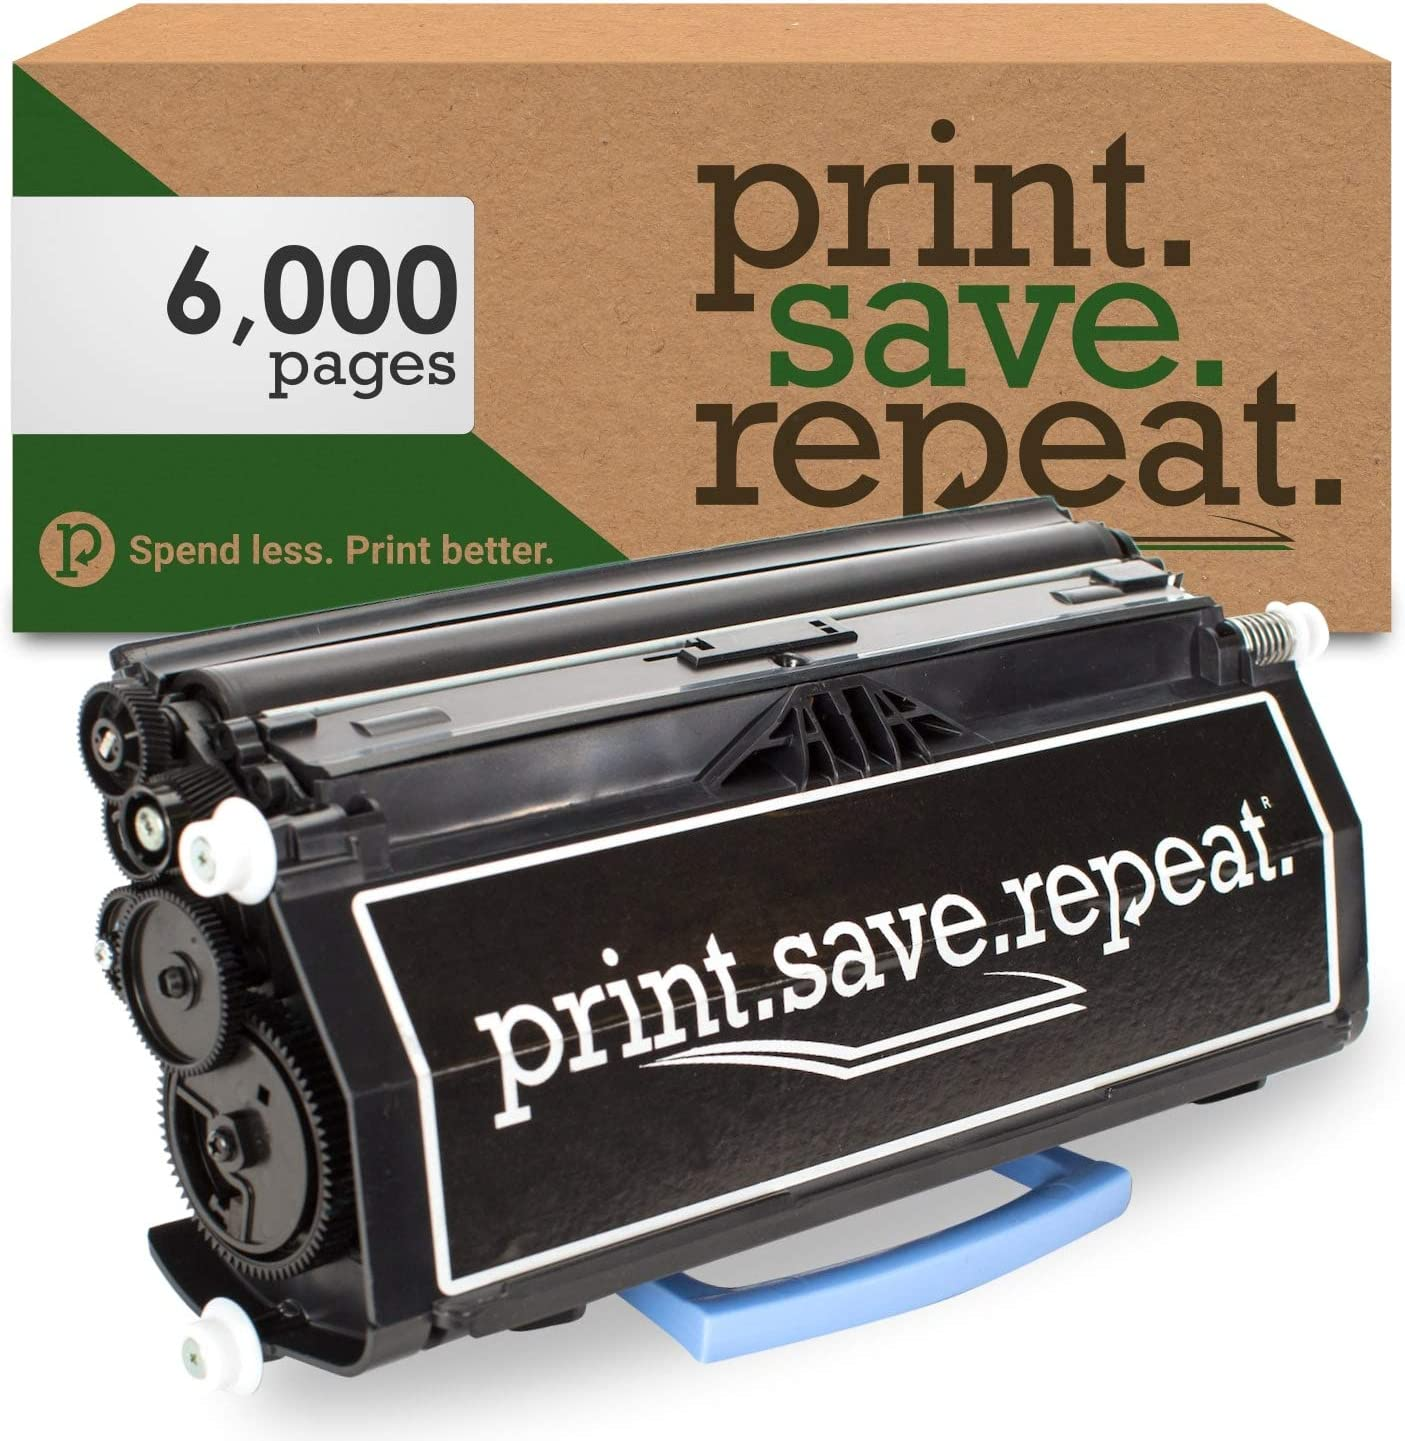 Print.Save.Repeat. Dell PK941 High Yield Remanufactured Toner Cartridge for 2330, 2350 [6,000 Pages]